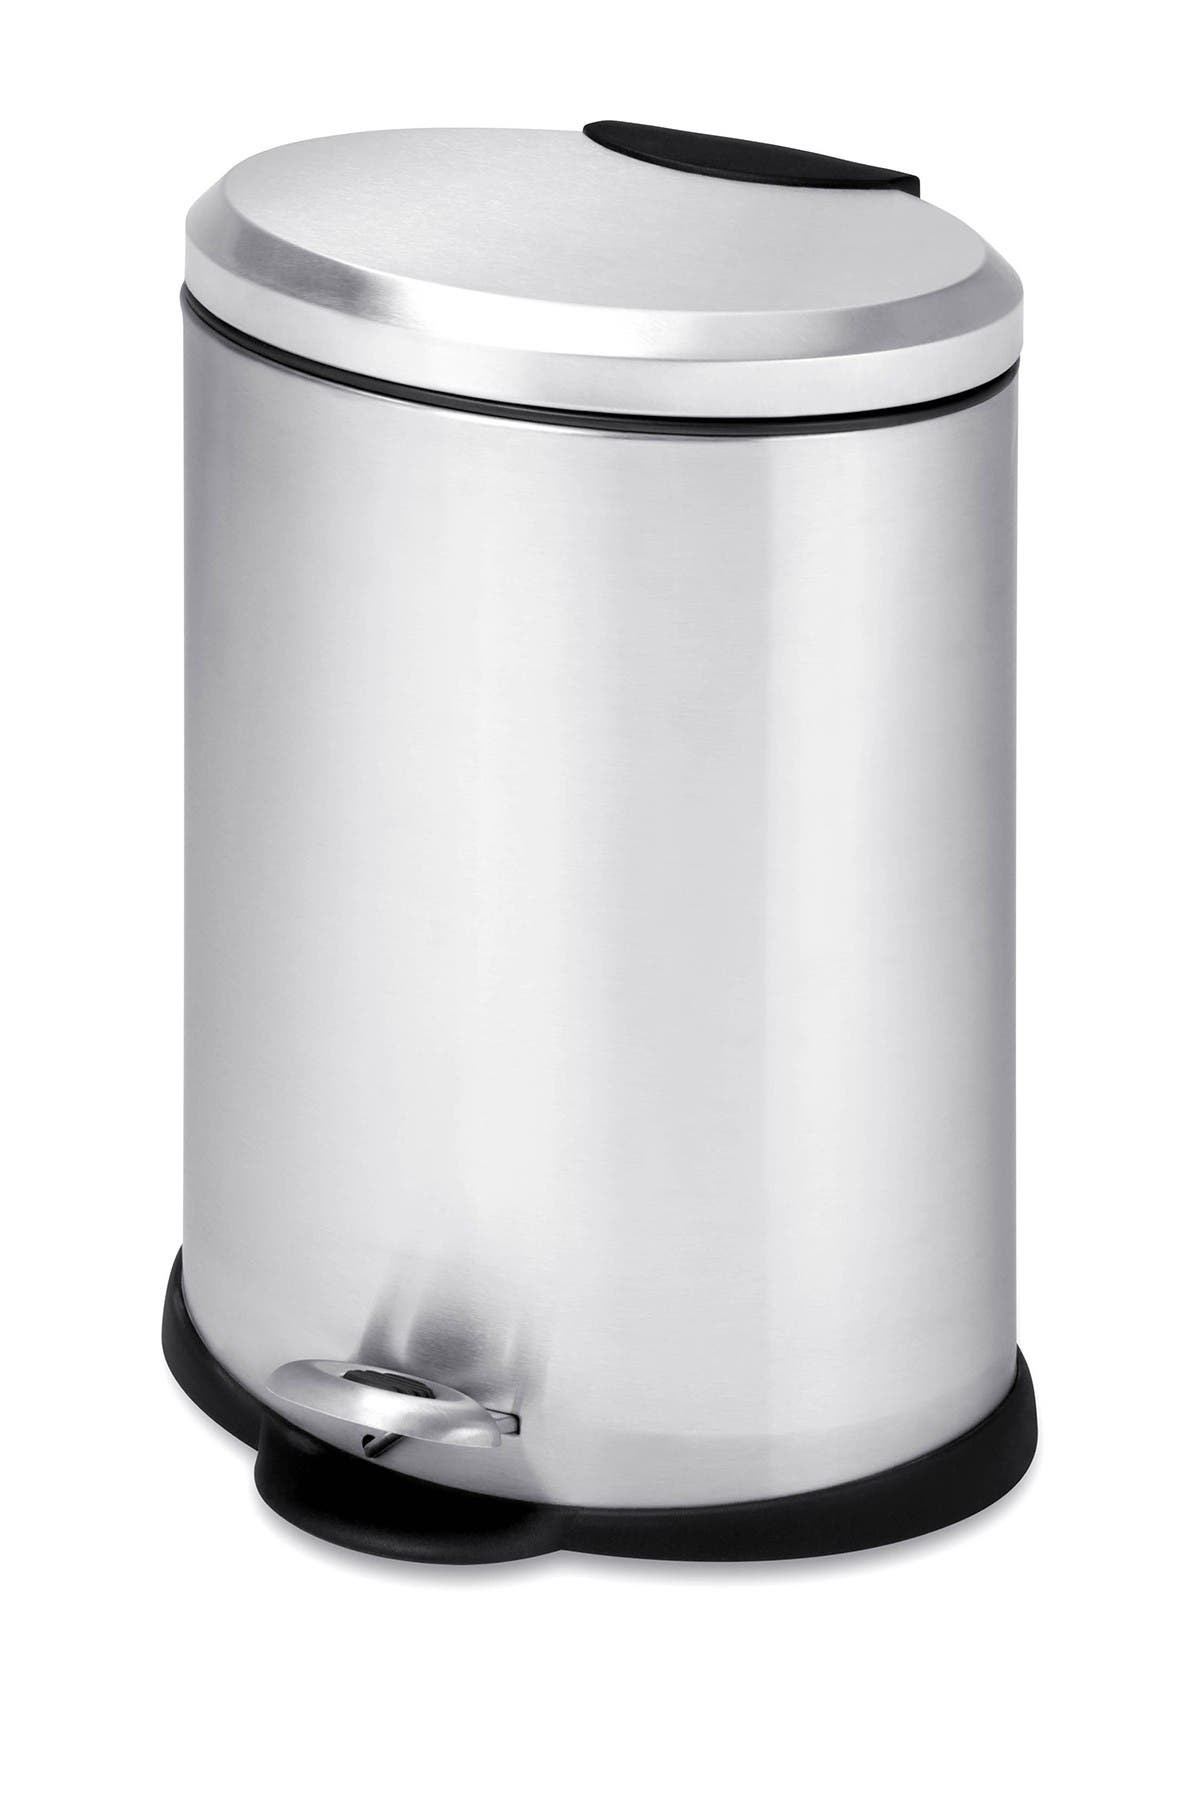 Image of Honey-Can-Do Oval Stainless Steel Step Trash Can